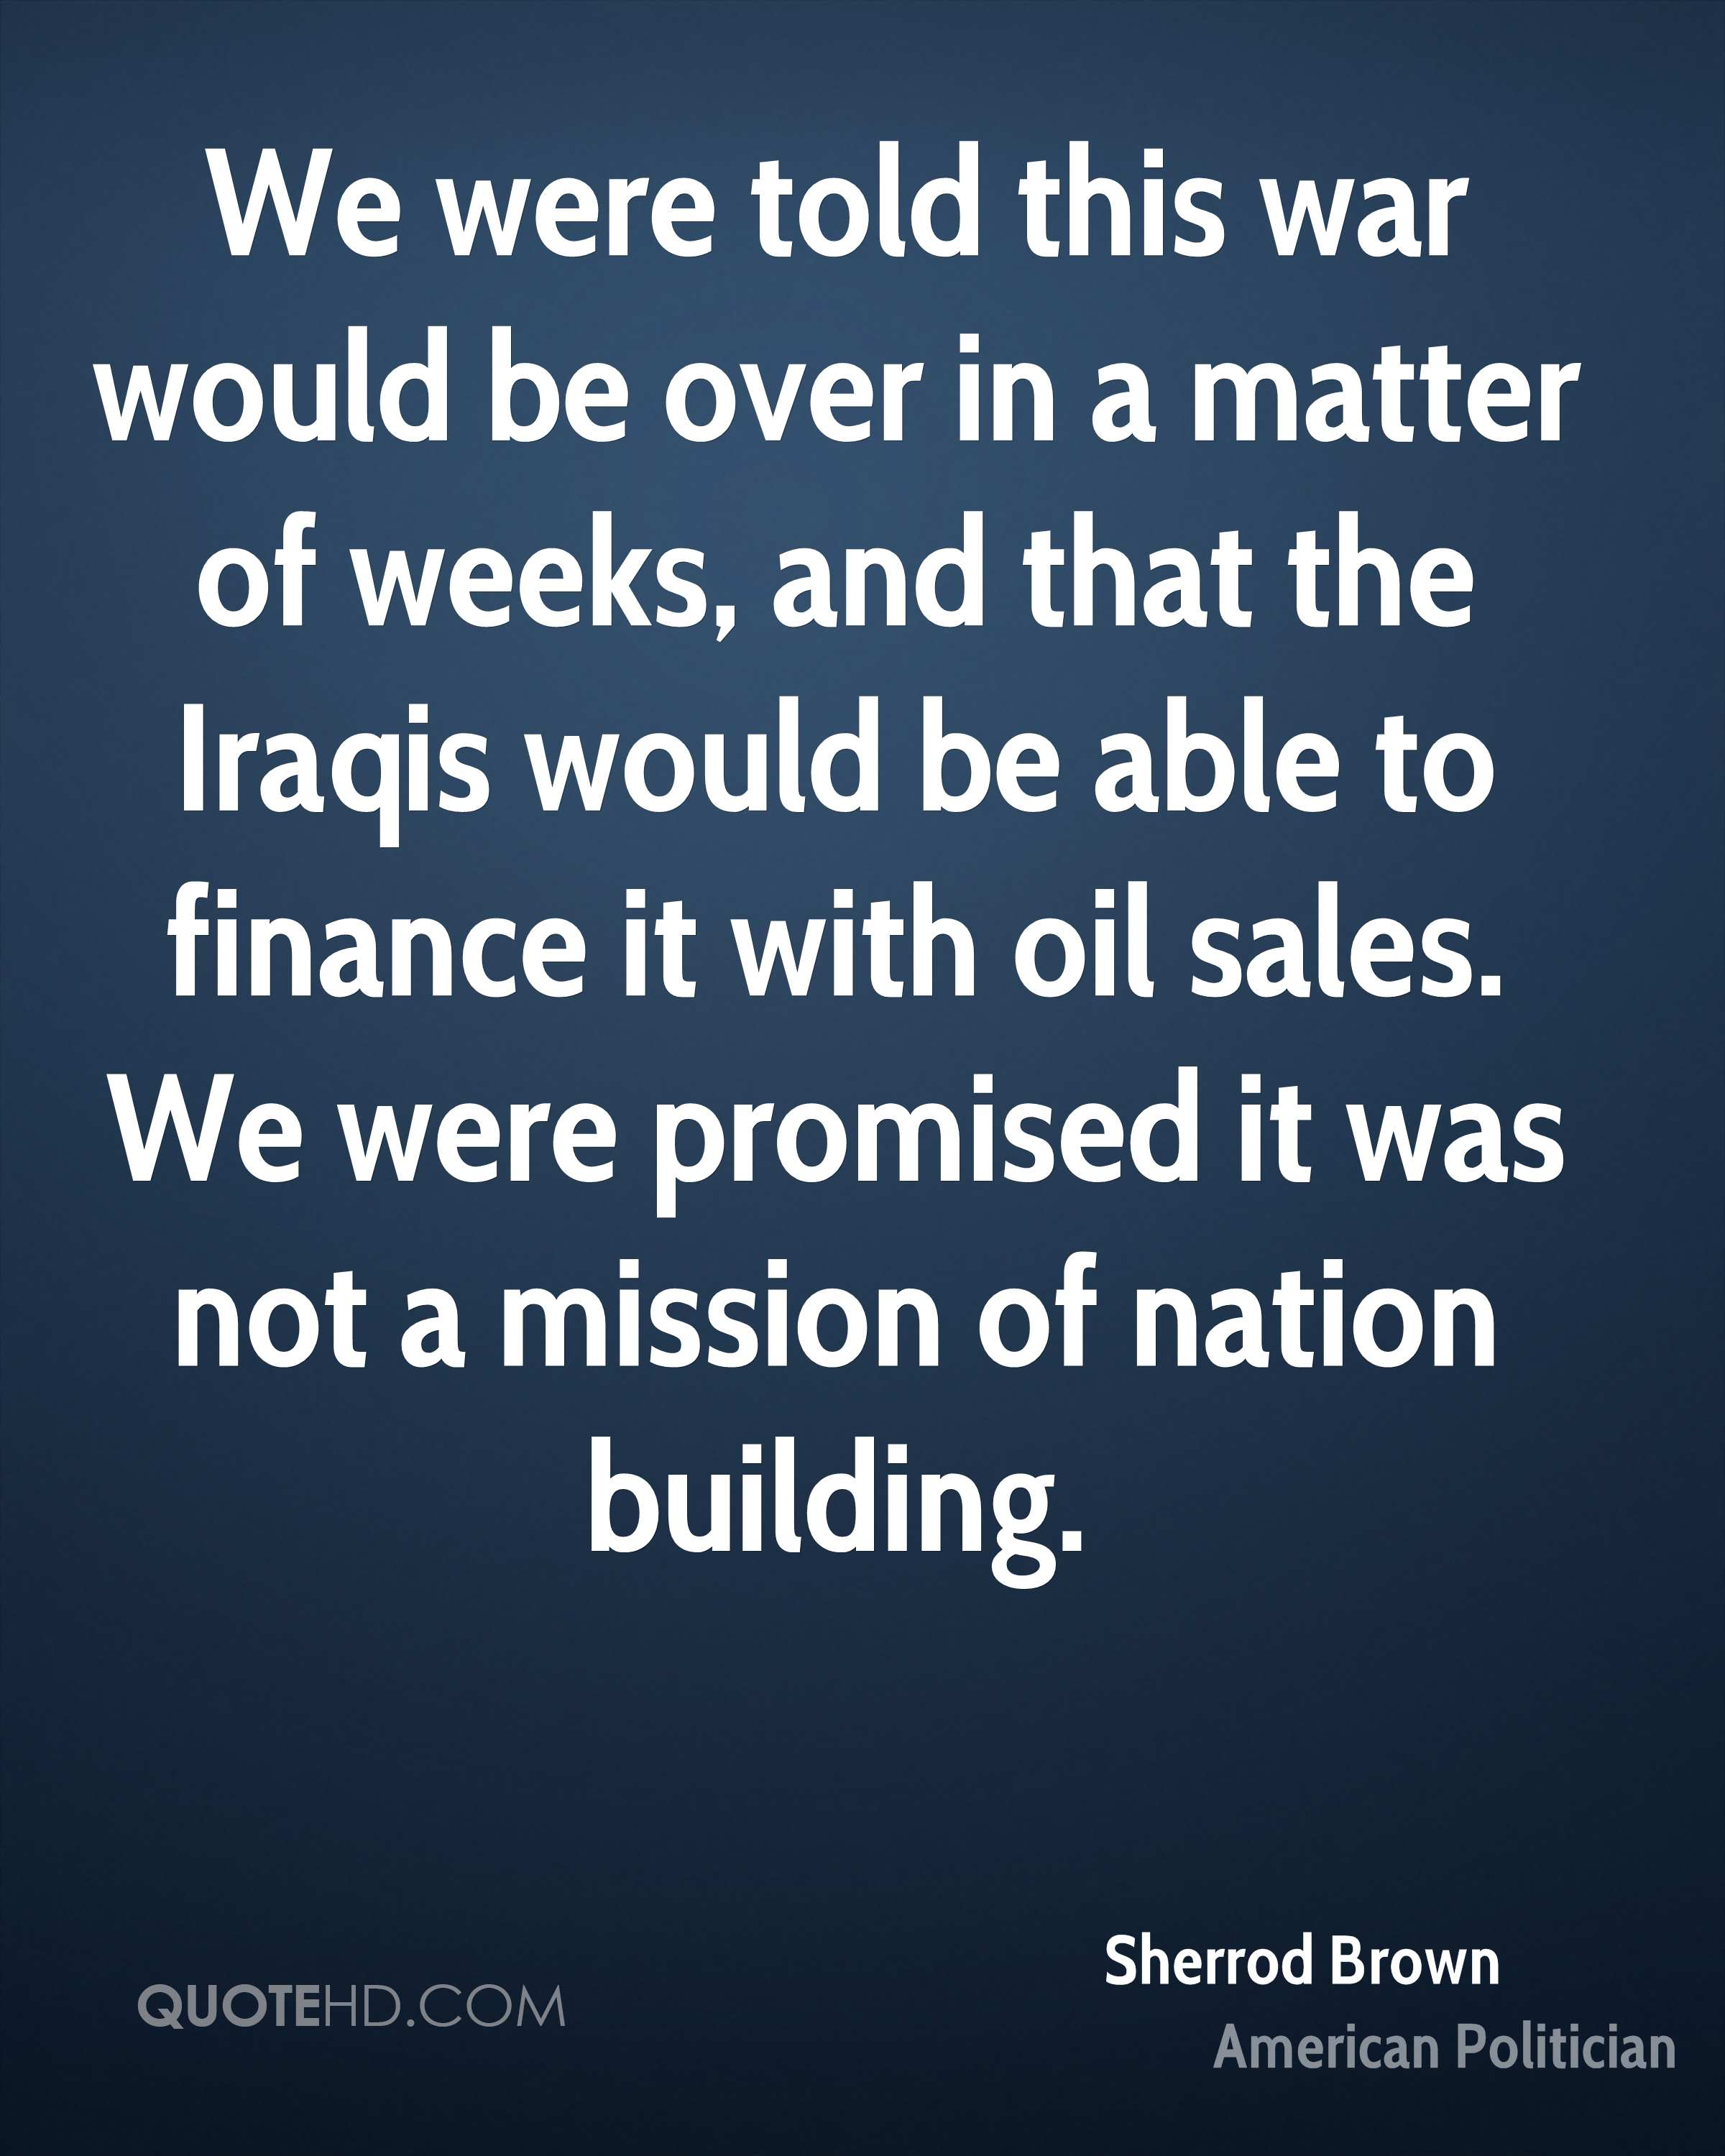 We were told this war would be over in a matter of weeks, and that the Iraqis would be able to finance it with oil sales. We were promised it was not a mission of nation building.